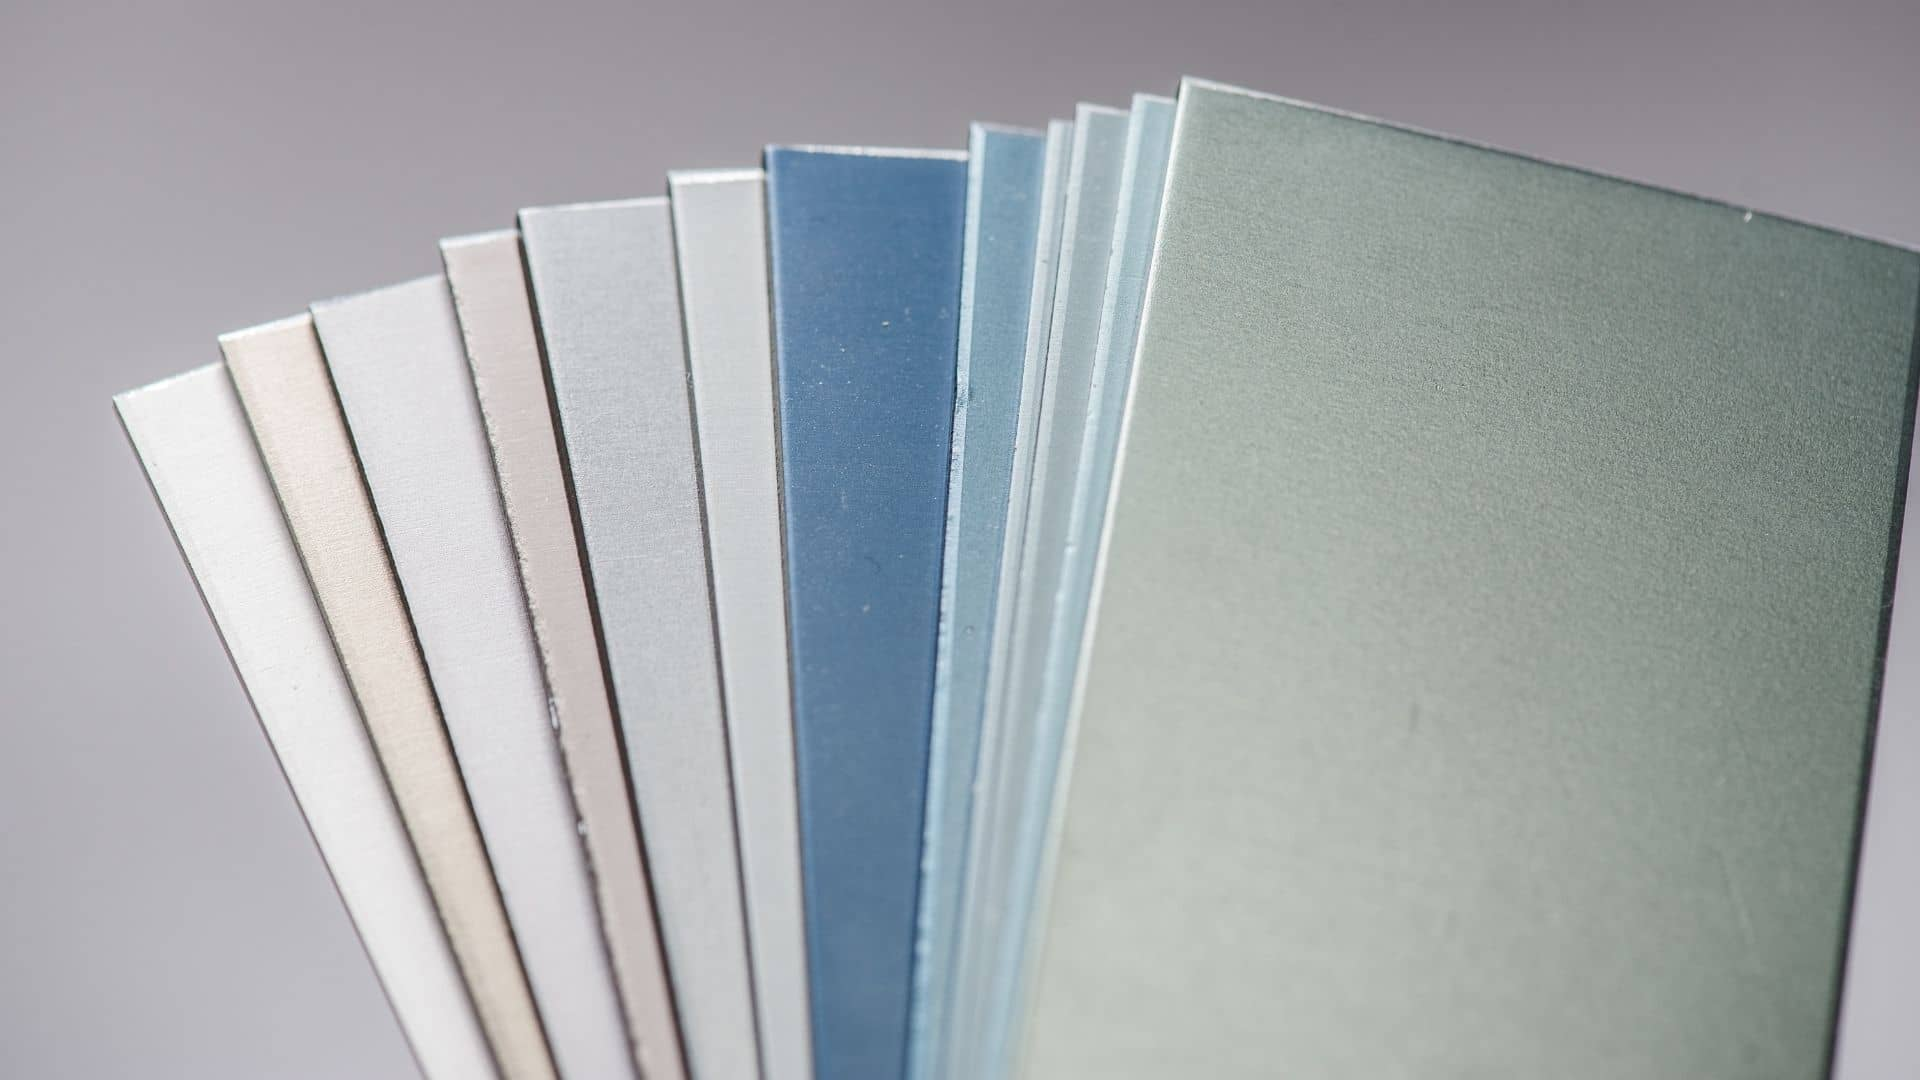 How To Paint Anodized Aluminum